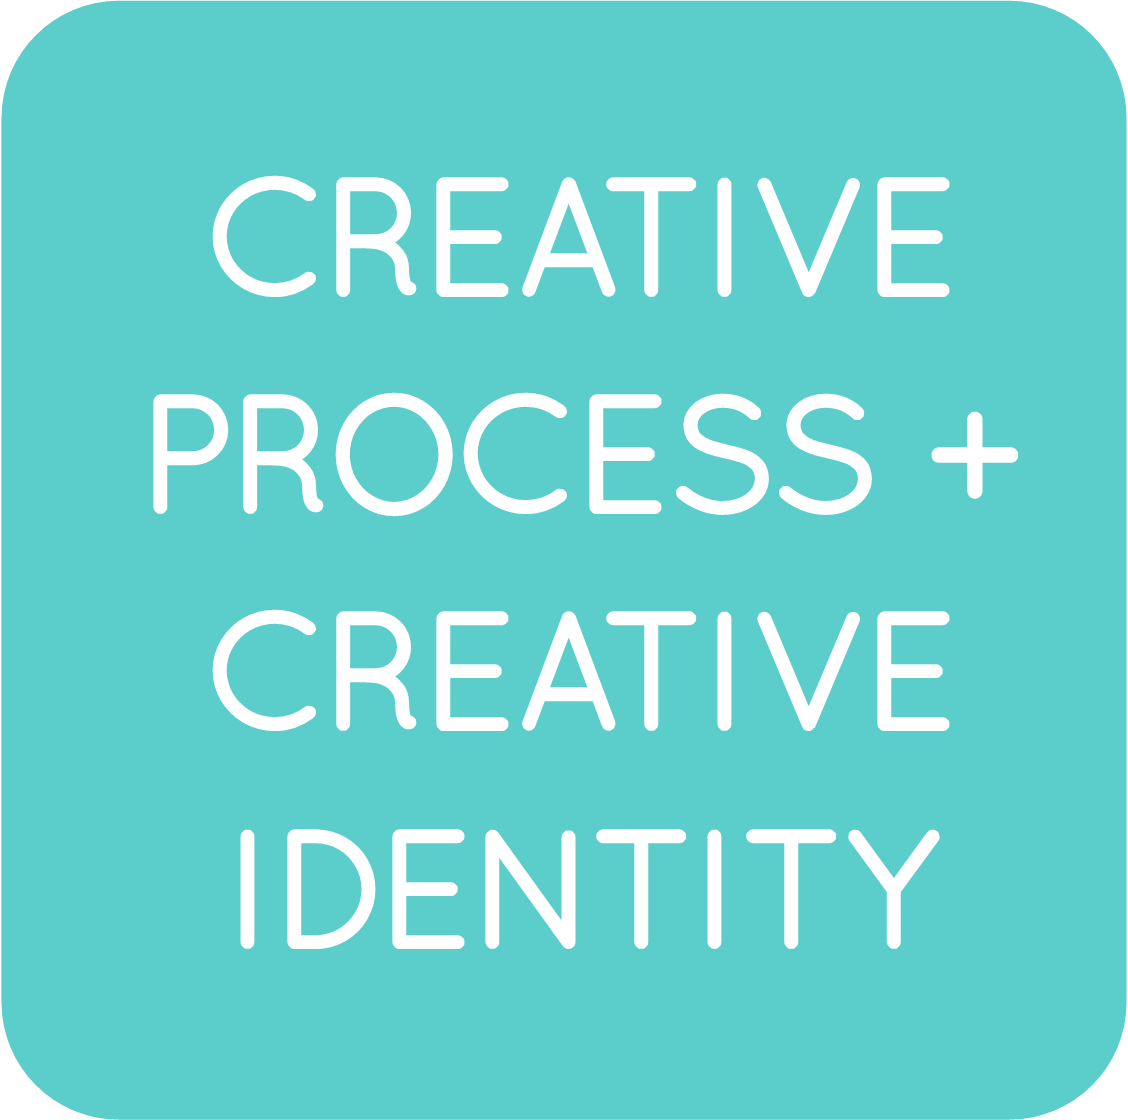 00-creative process and identity.png